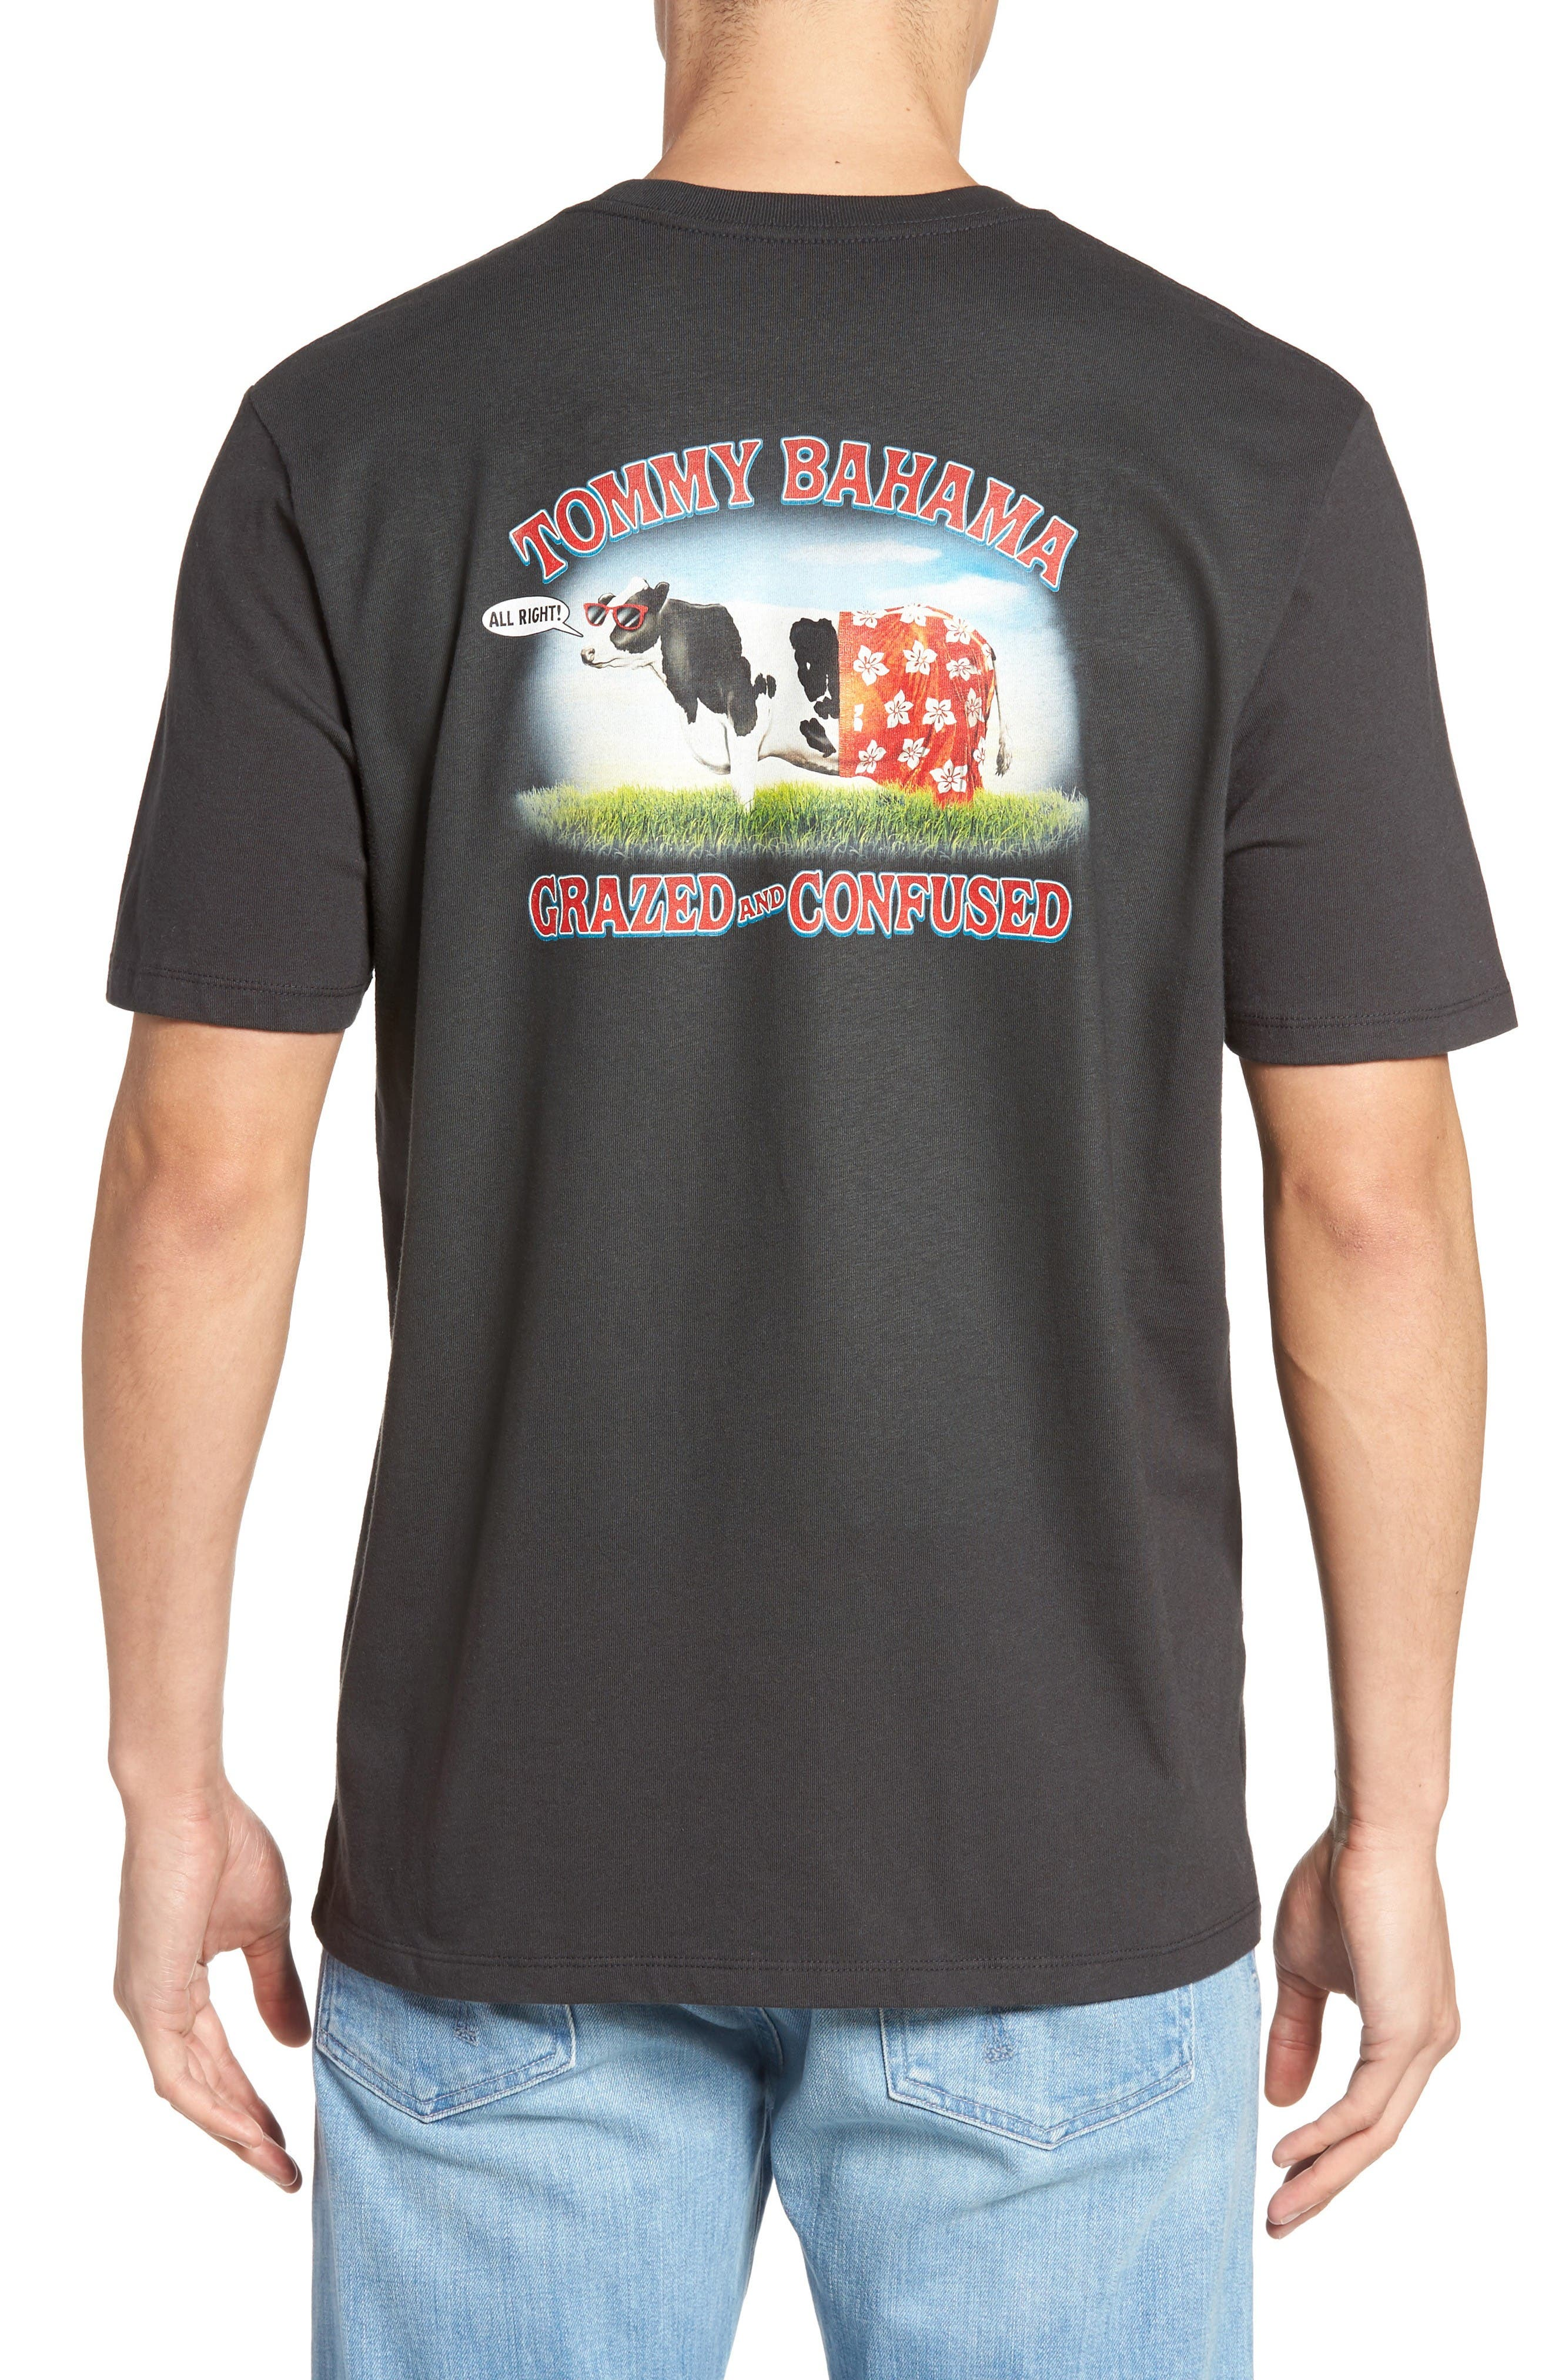 Tommy Bahama Grazed and Confused Graphic T-Shirt